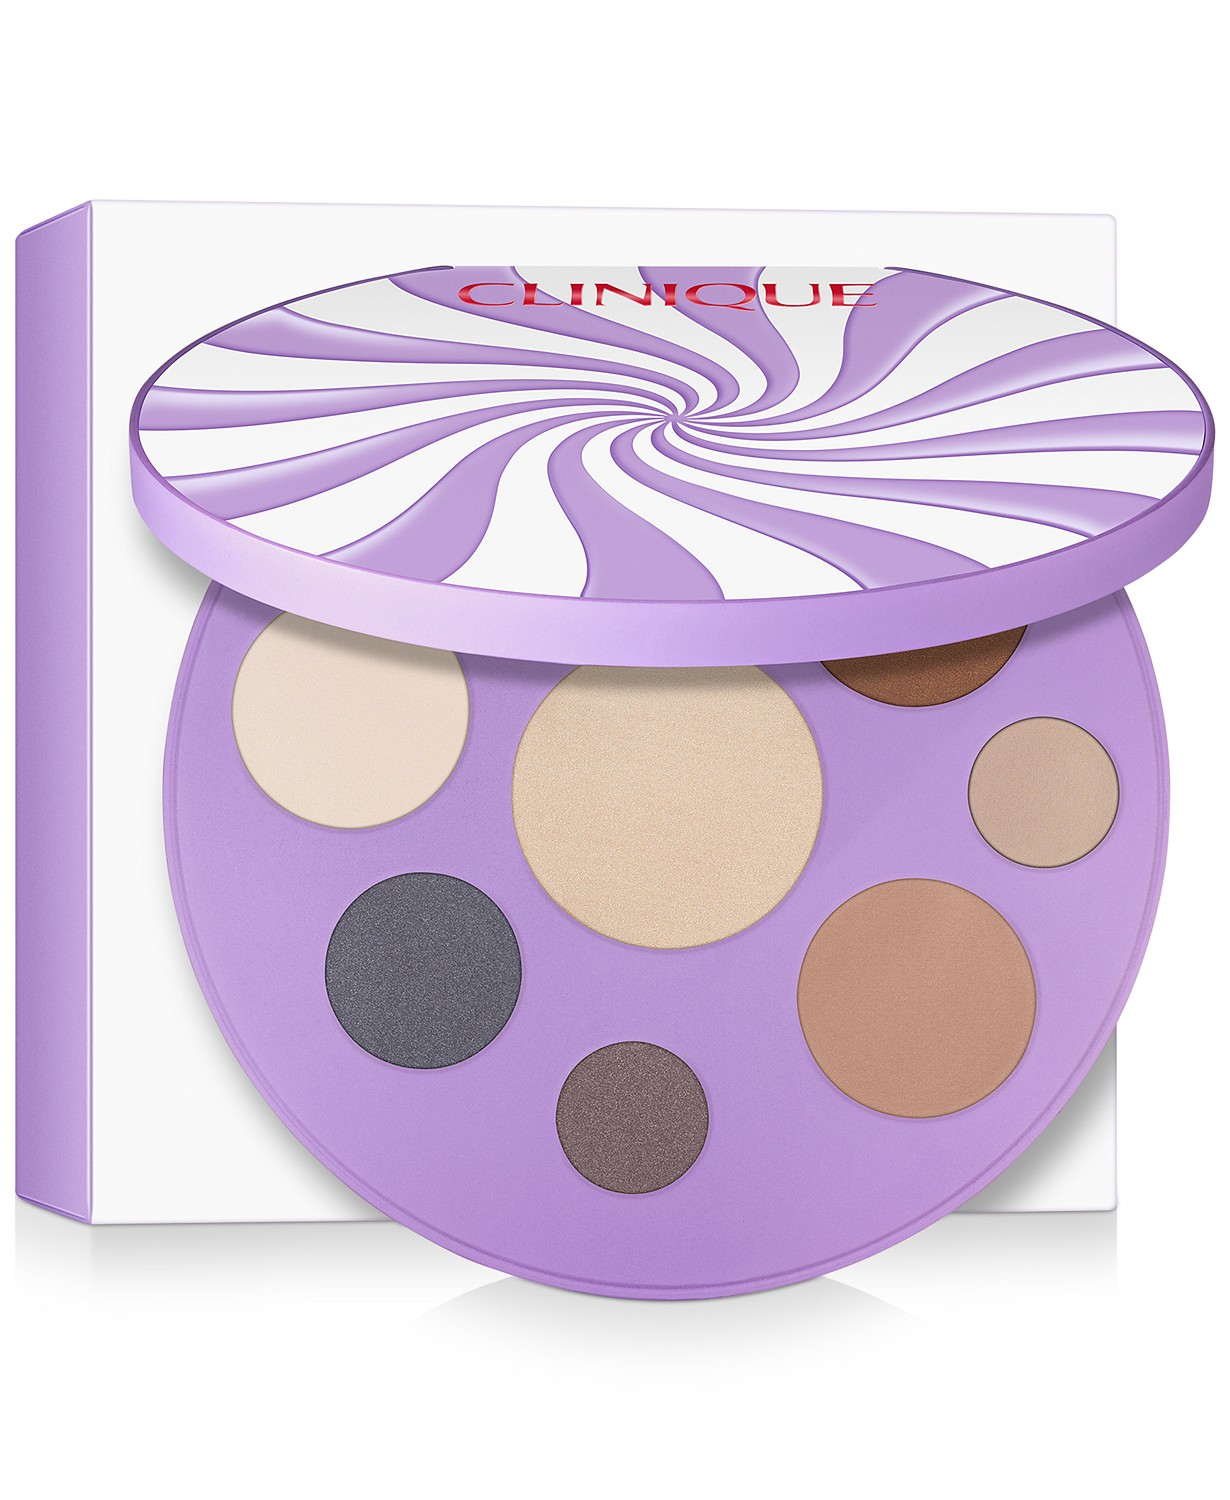 Clinique Indulge In Color Eyeshadow Palette